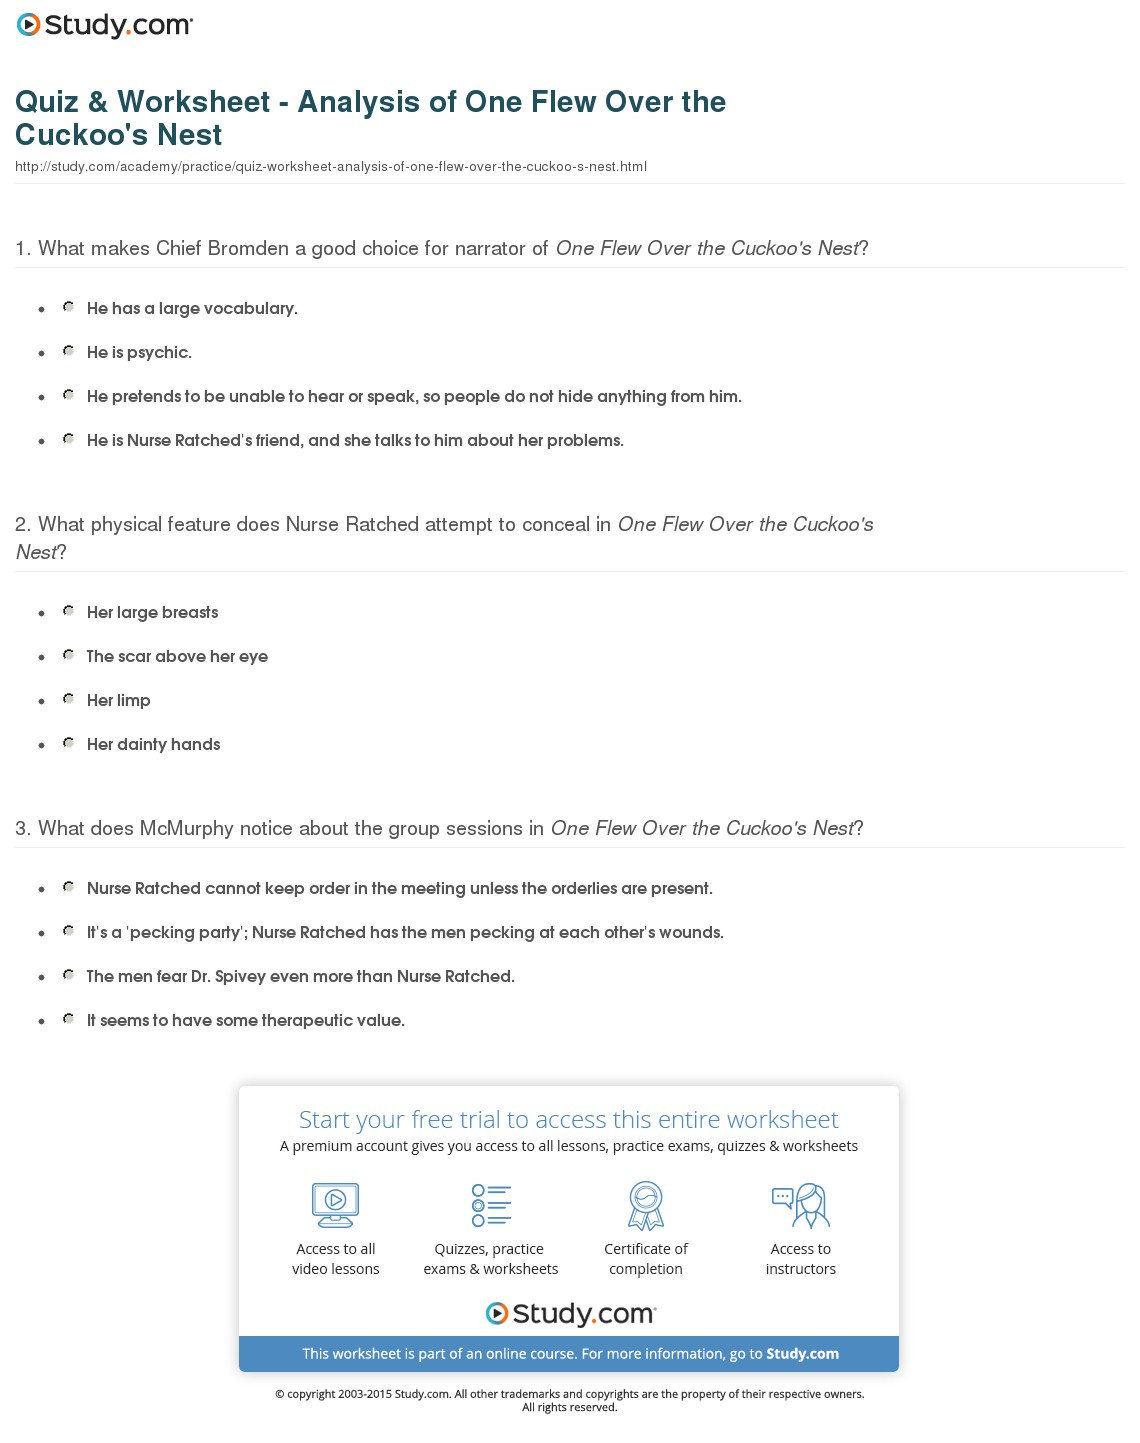 002 Quiz Worksheet Analysis Of One Flew Over The Cuckoo S Nest Essay Example Wonderful Cuckoos Cuckoo's Prompts Writing Questions Full